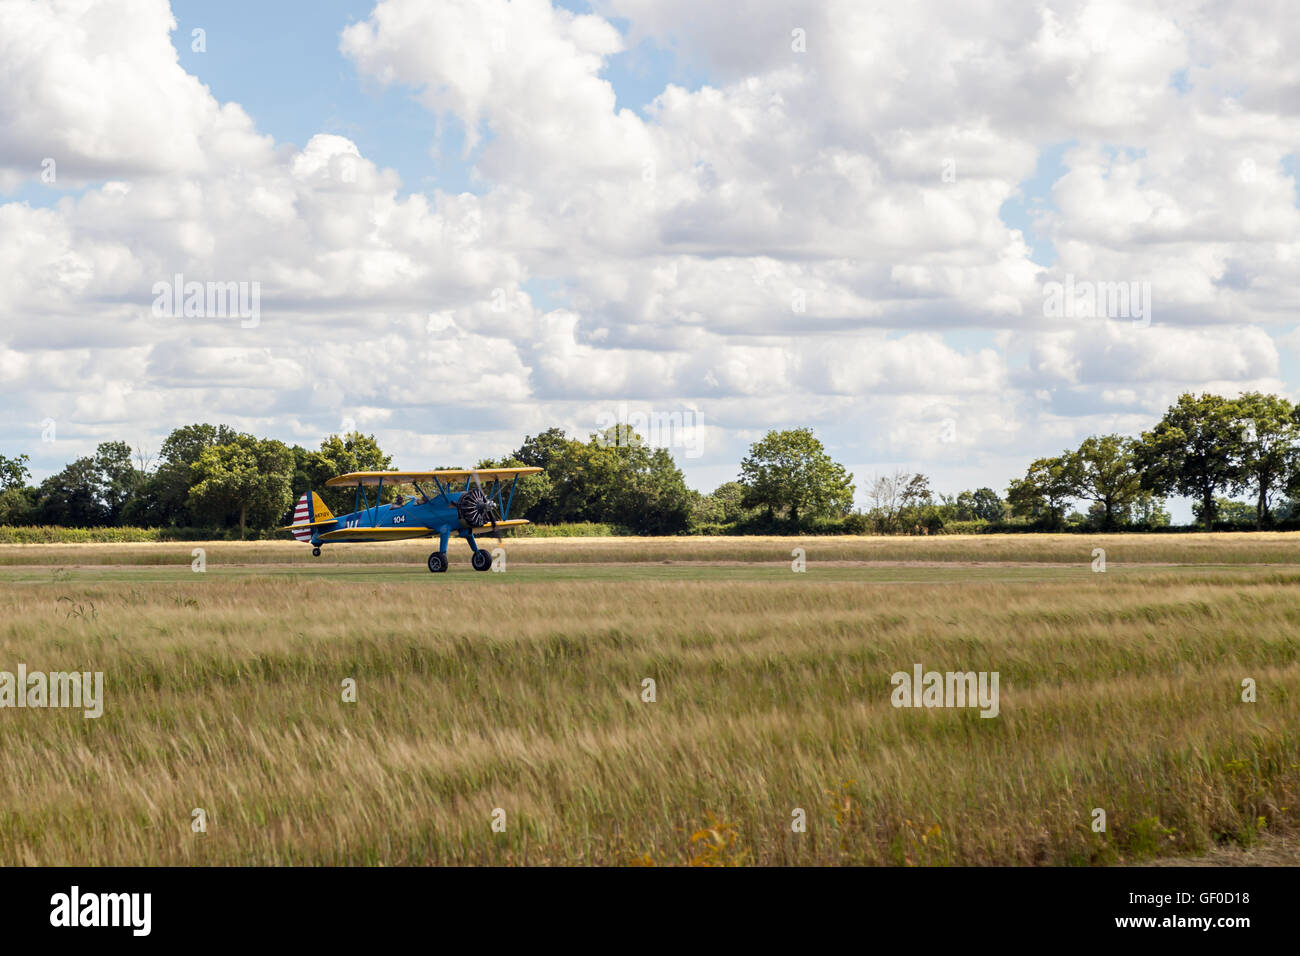 A vintage bi-plane taking off from grass runway Stock Photo